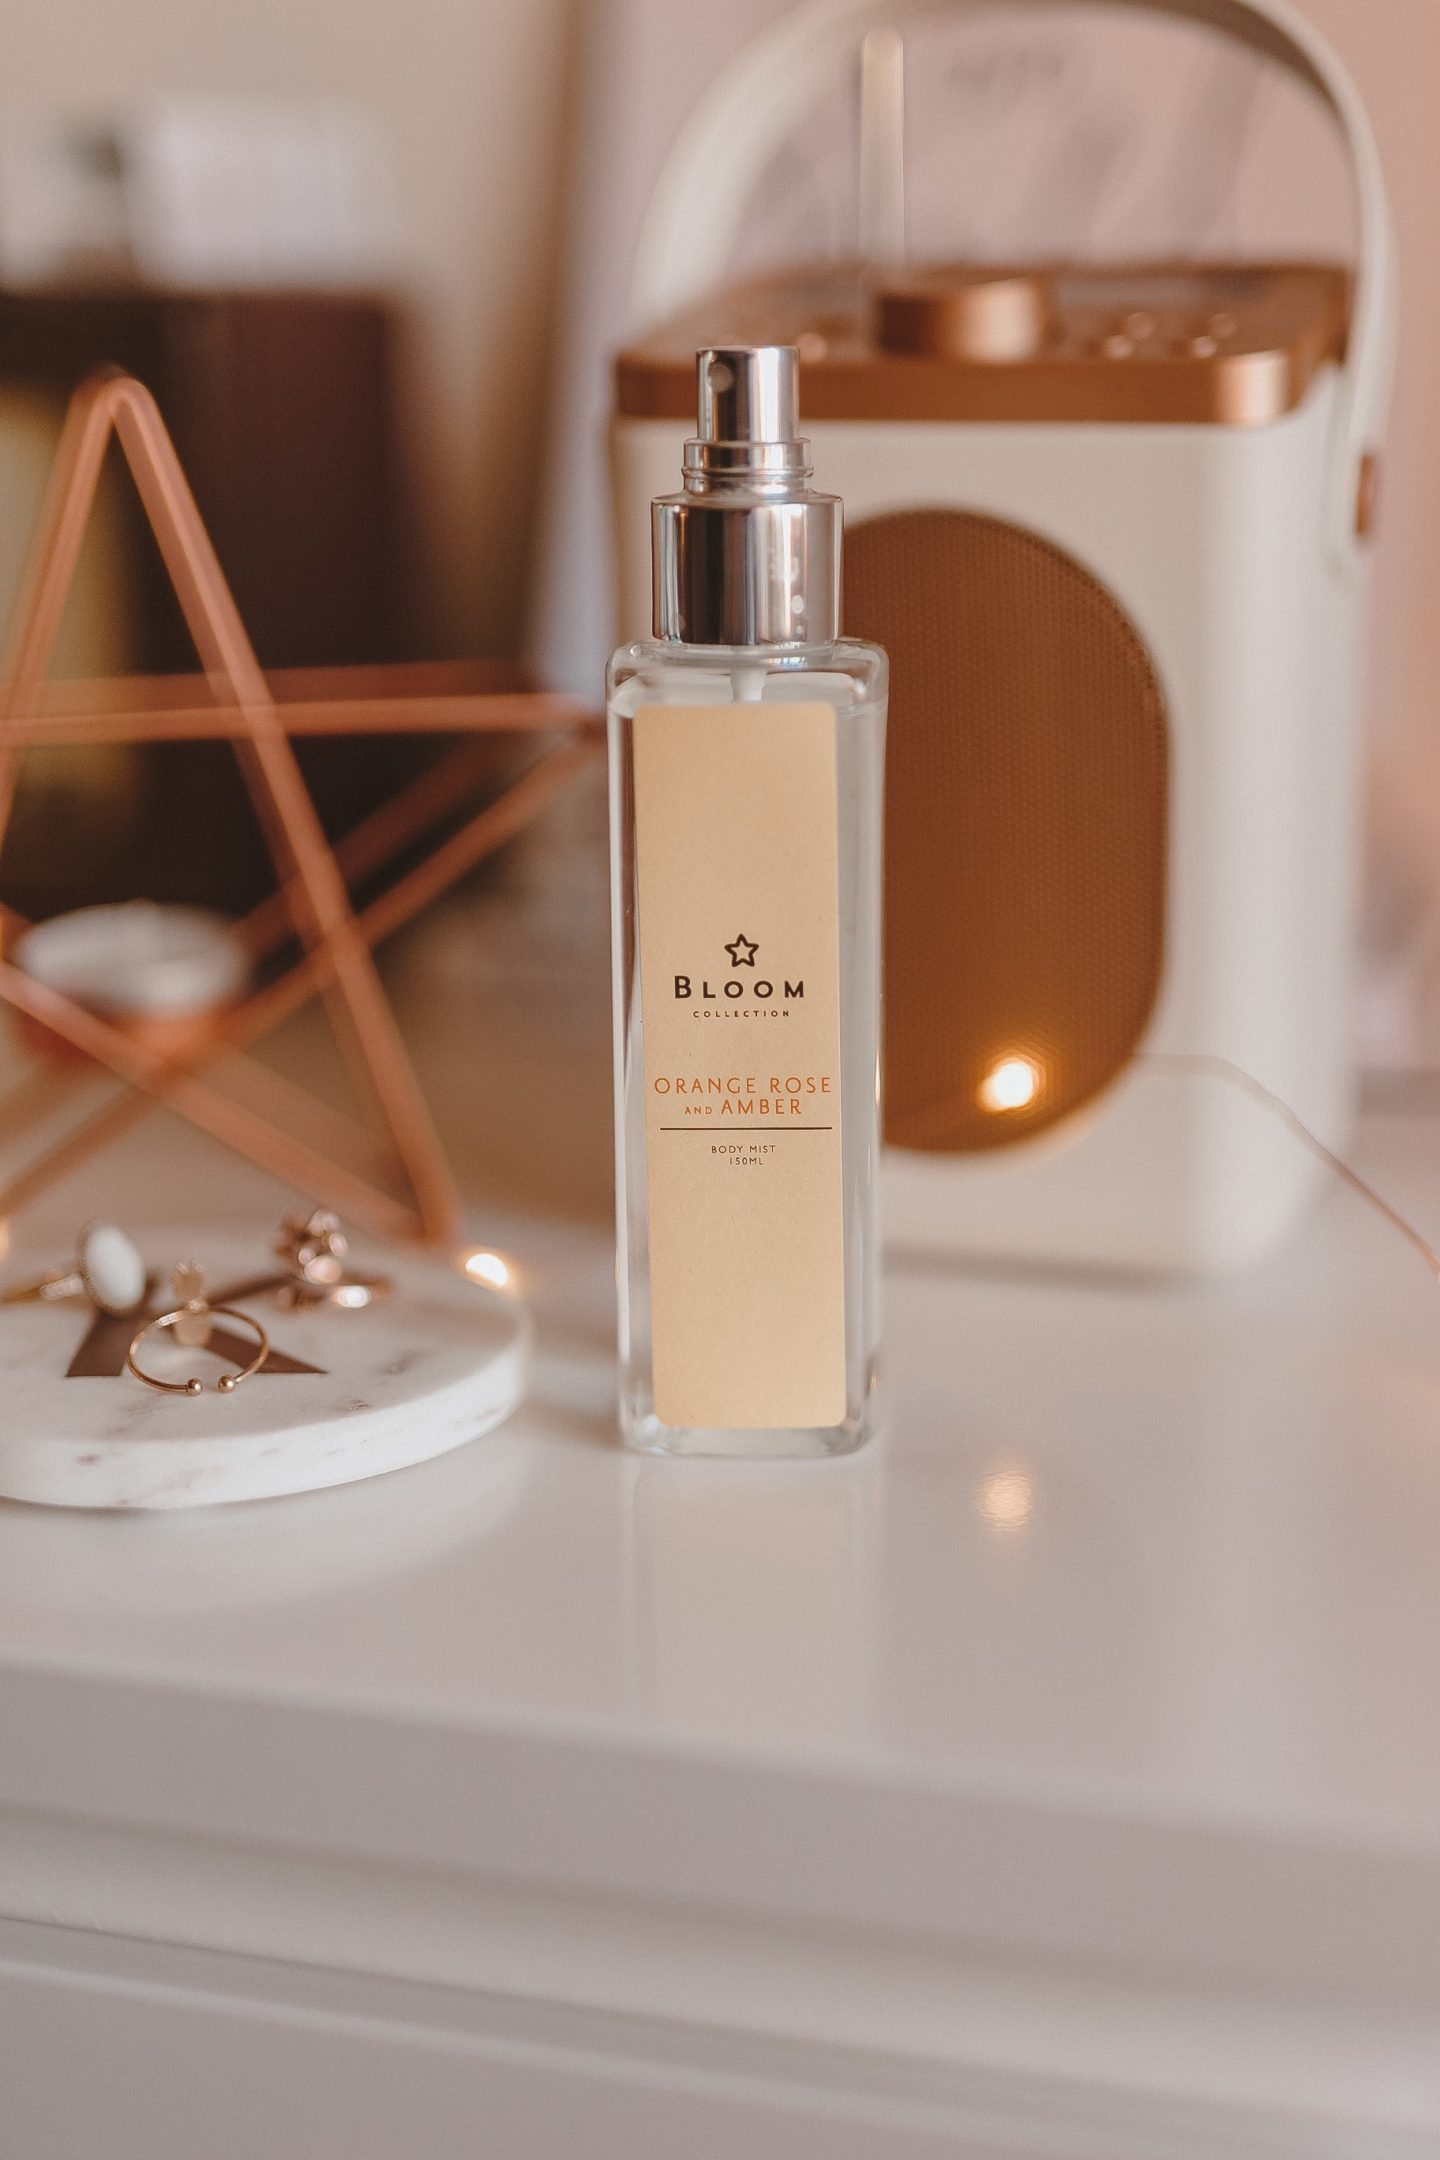 Jo Malone Dupe, Superdrug Bloom, Fragrances, Cheap perfume, Beauty blogs, Superdrug Bloom Reviews, Cheap Jo Malone Dupes,